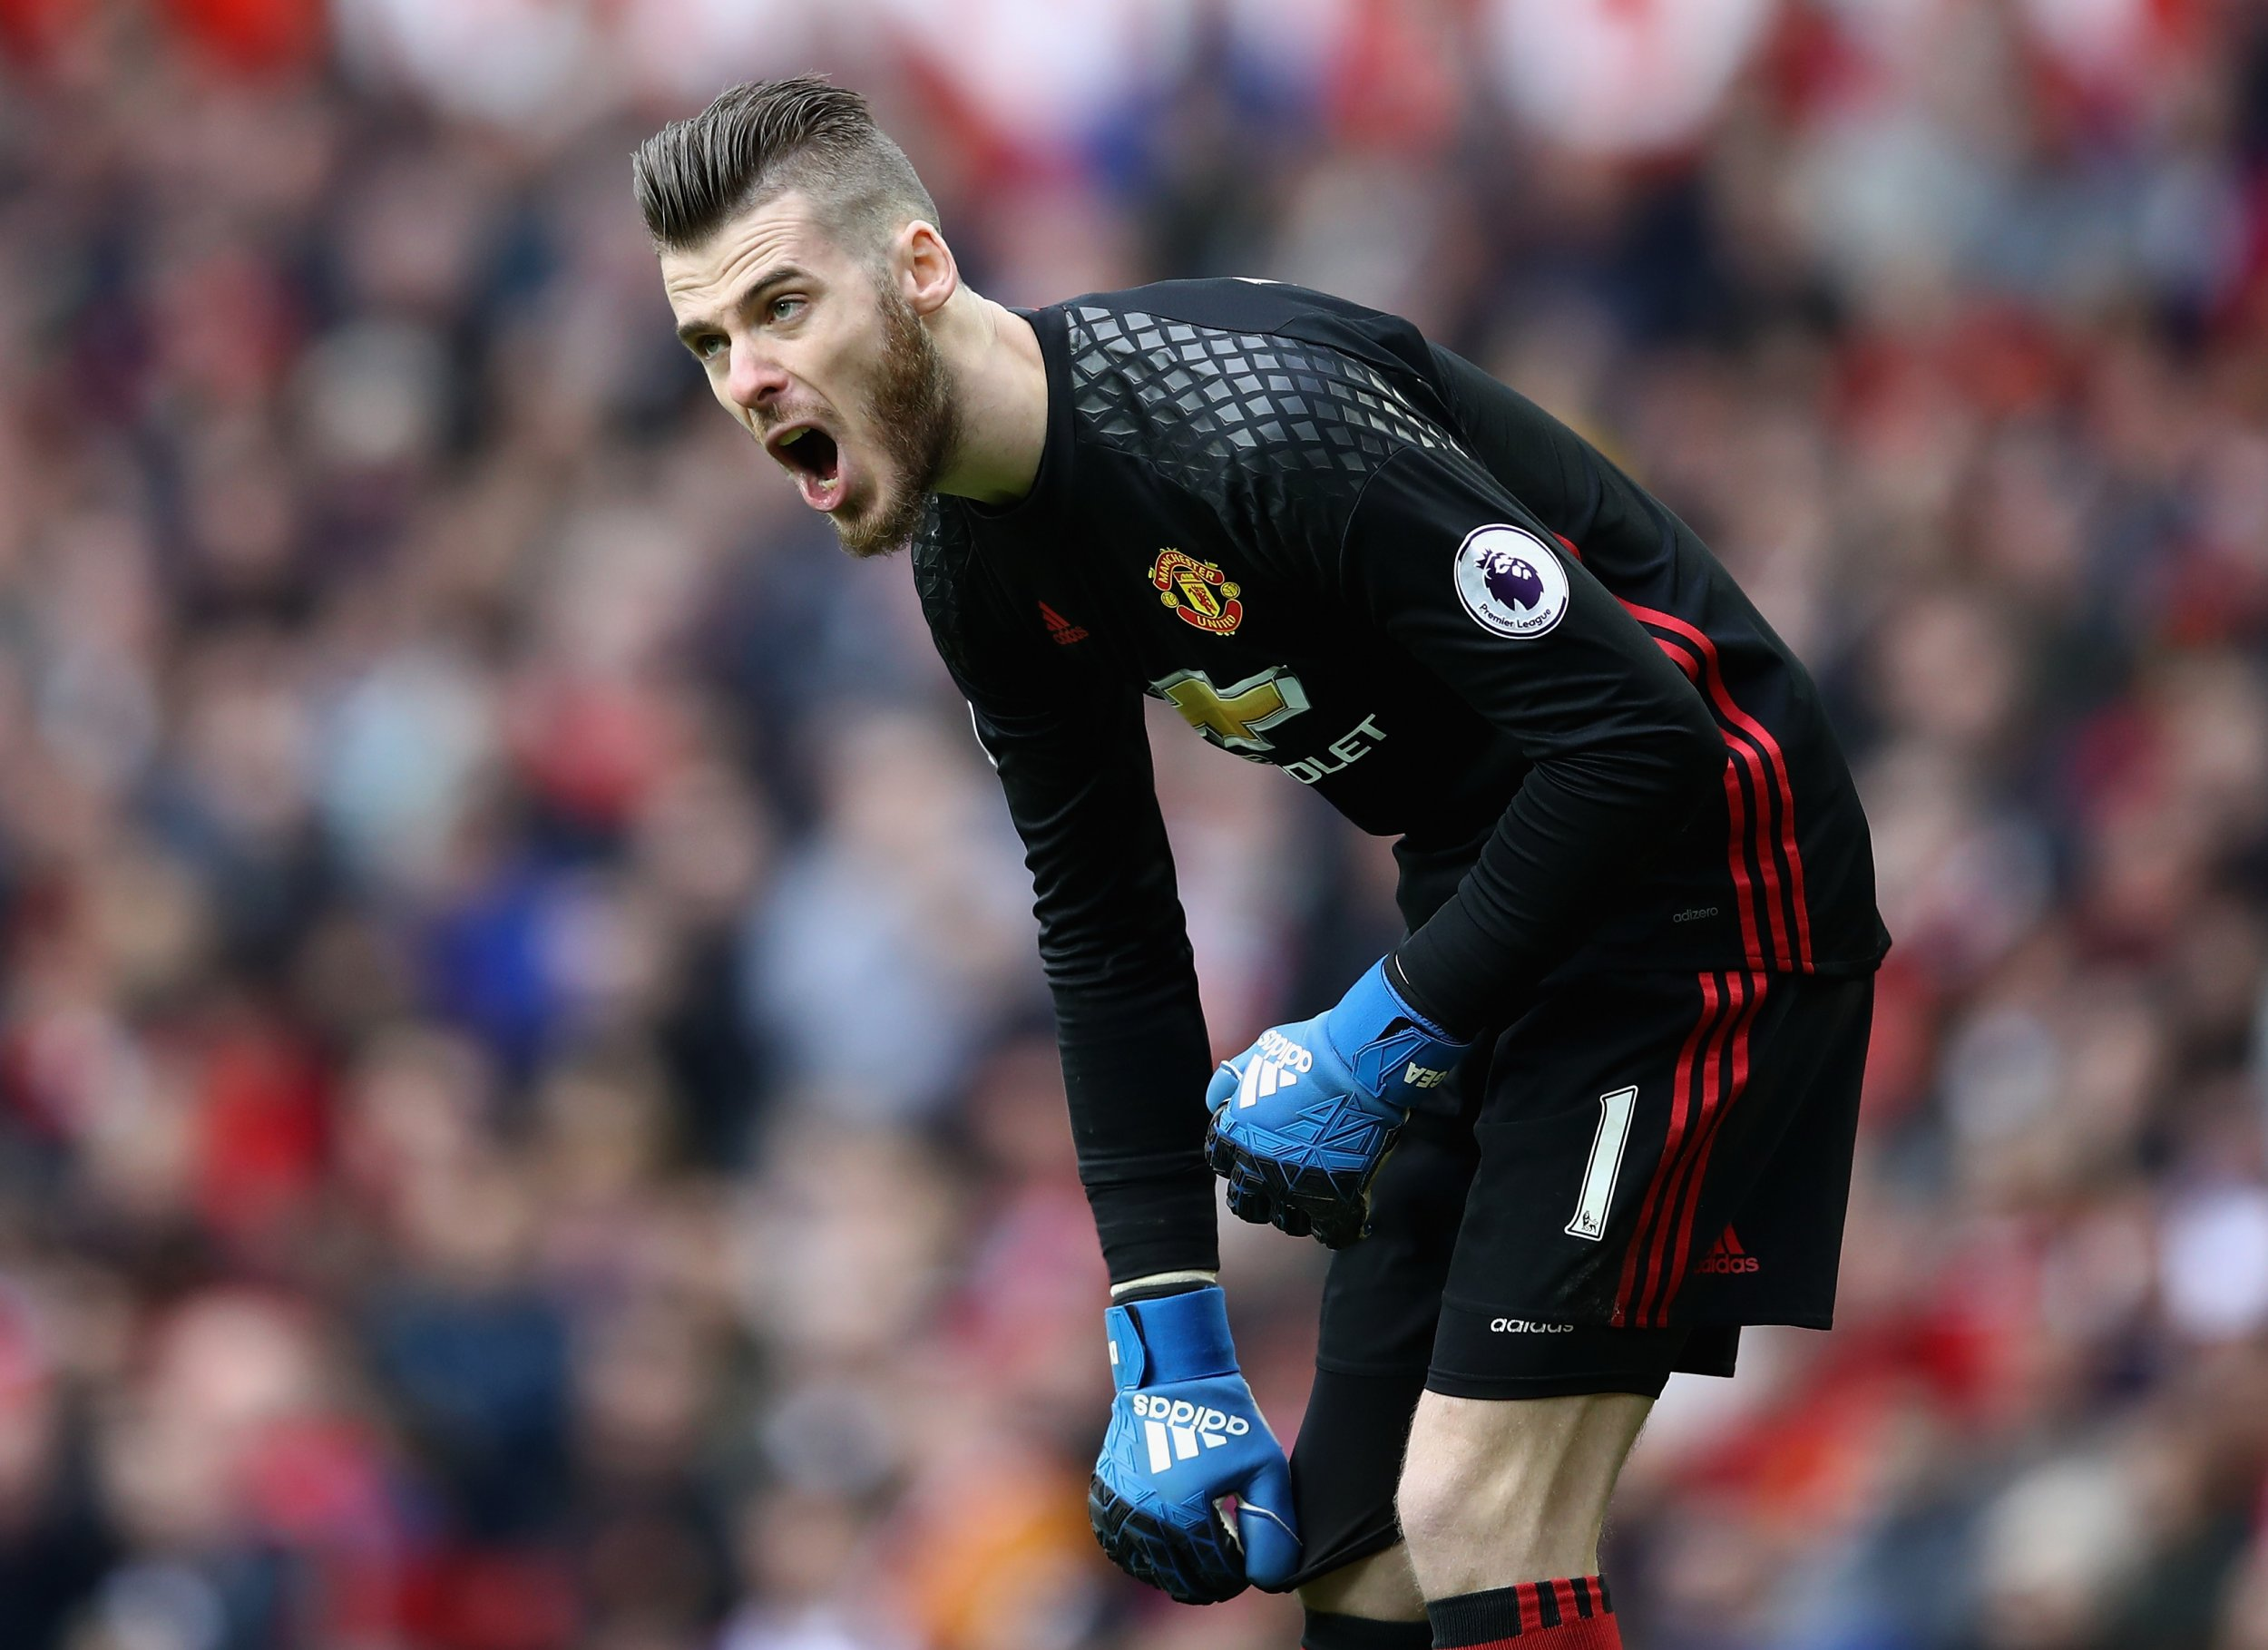 Real Madrid Prepares Swap Deal for Manchester United Star